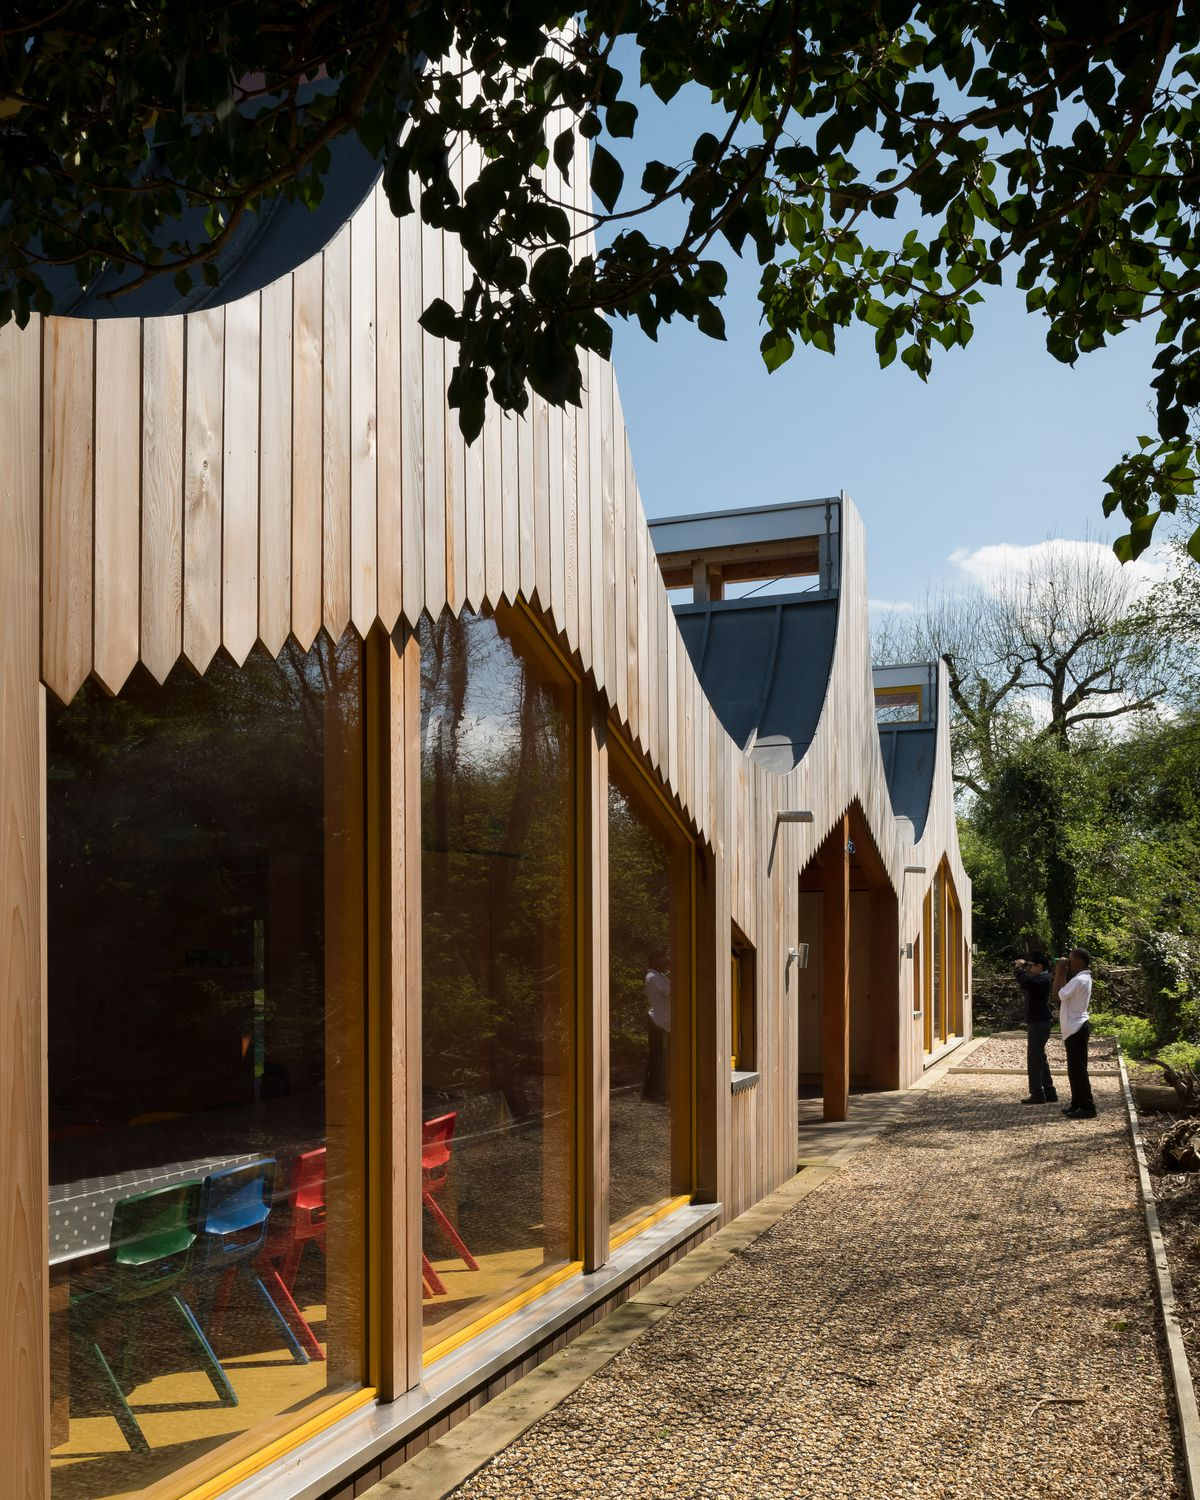 Modern school design blends nature with learning - Curbed